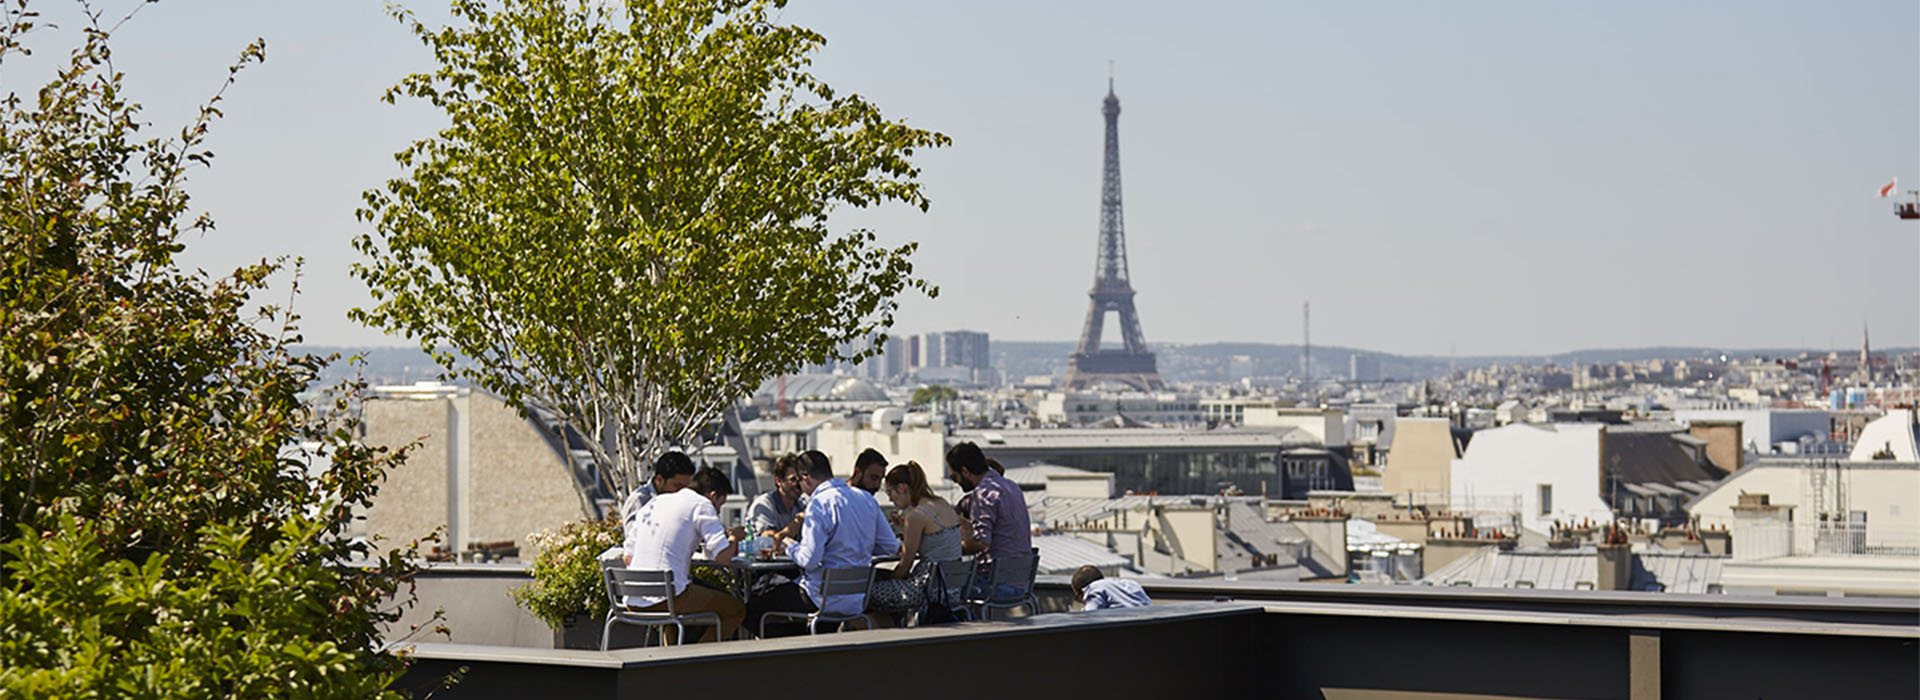 Lunch on Paris rooftop eiffel